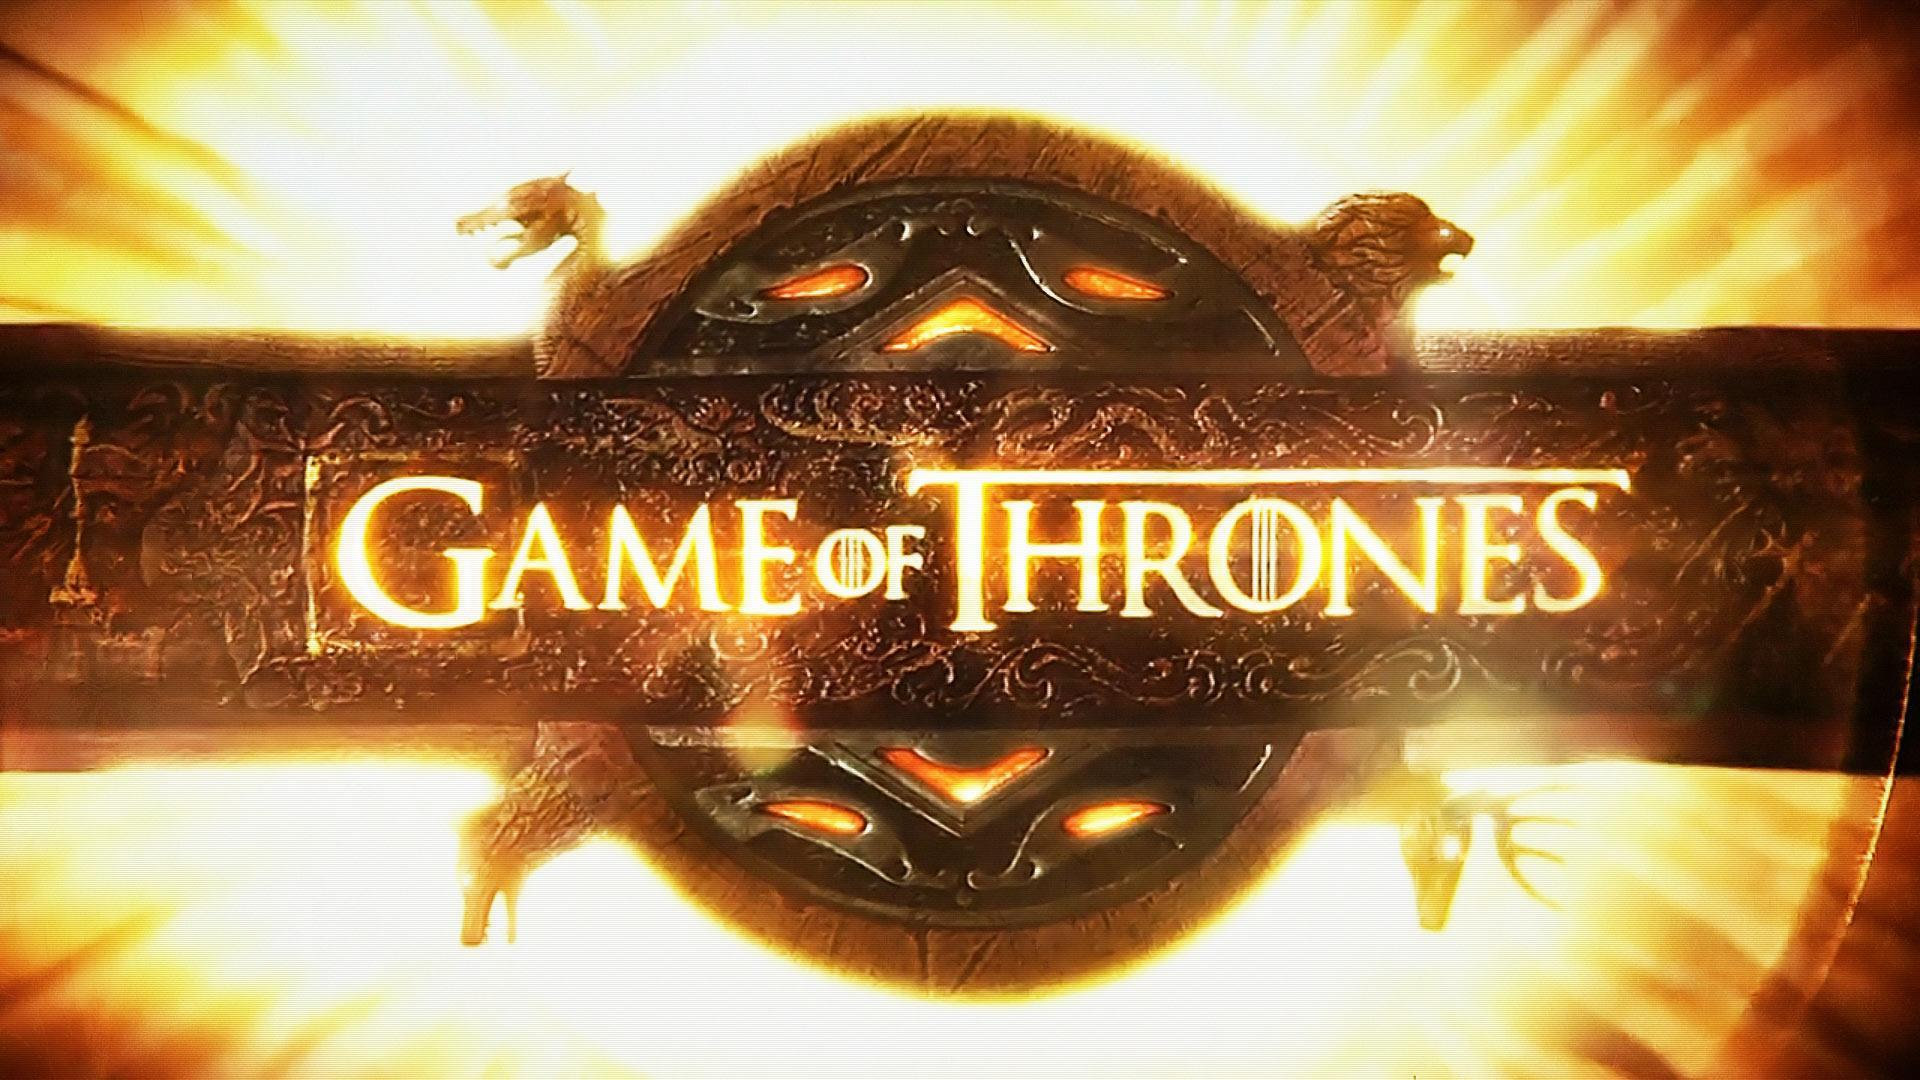 game-of-thrones-title-card.jpg